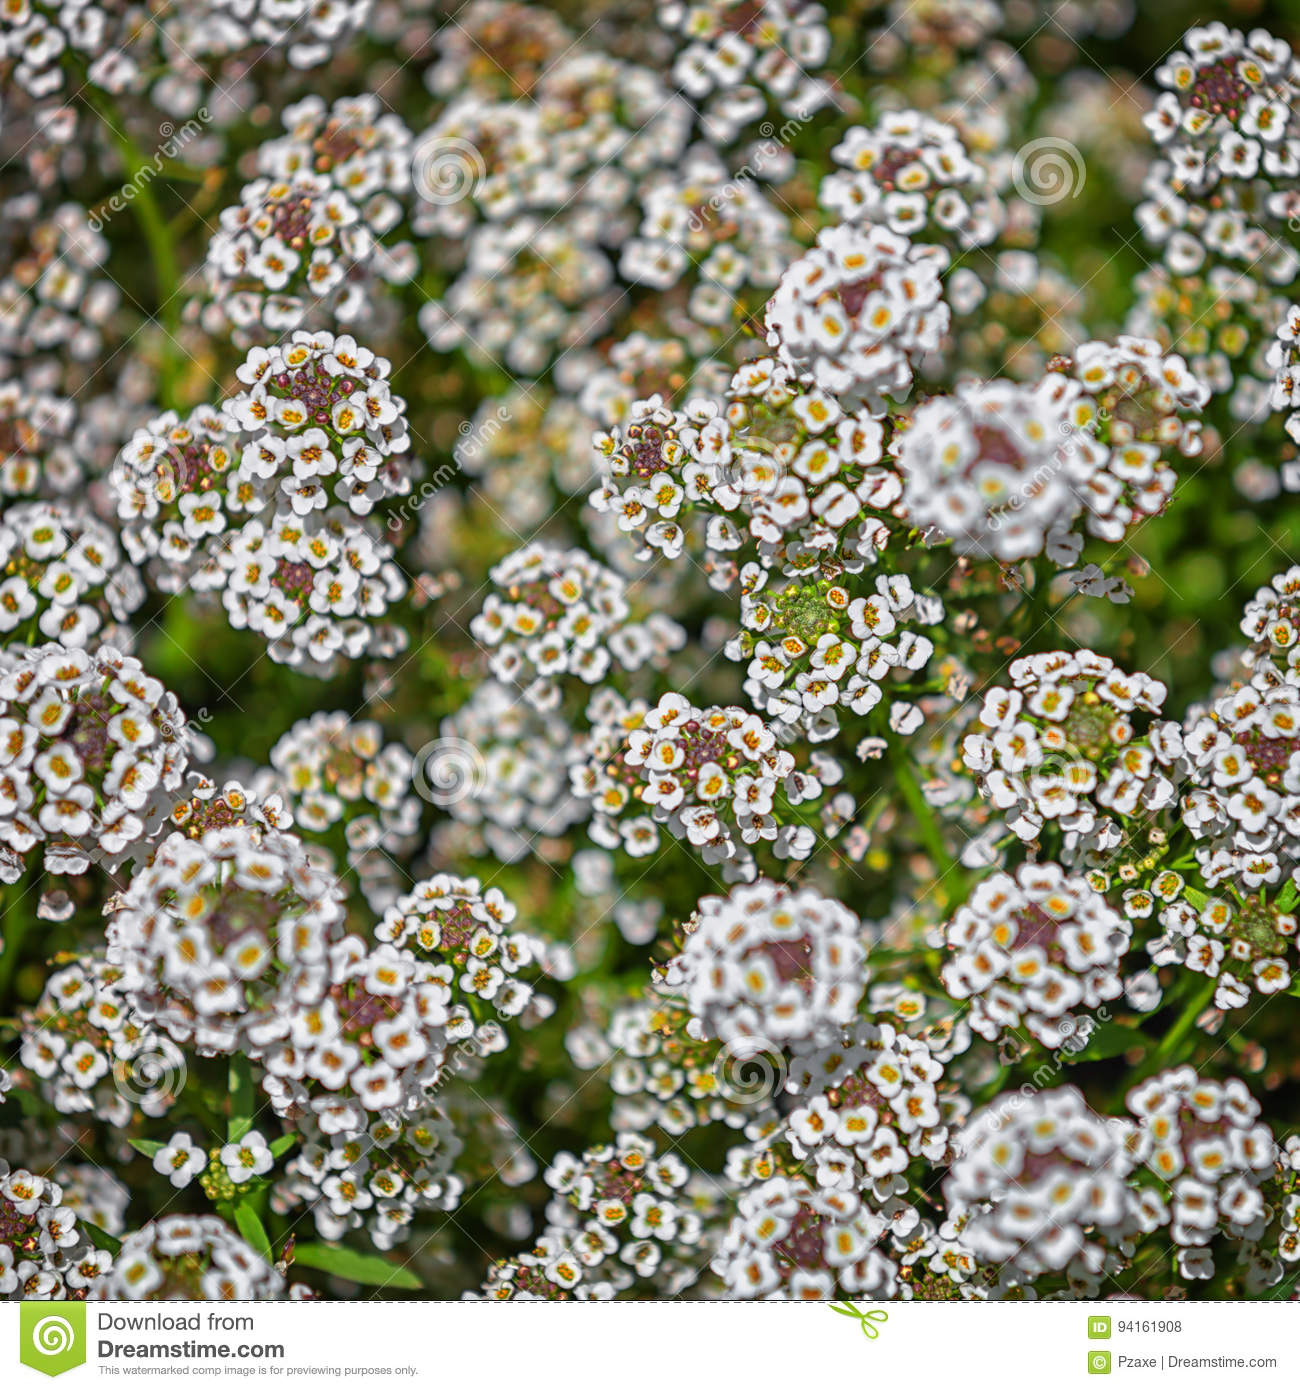 The Bush With Small White Flowers Stock Photo Image Of Leaves